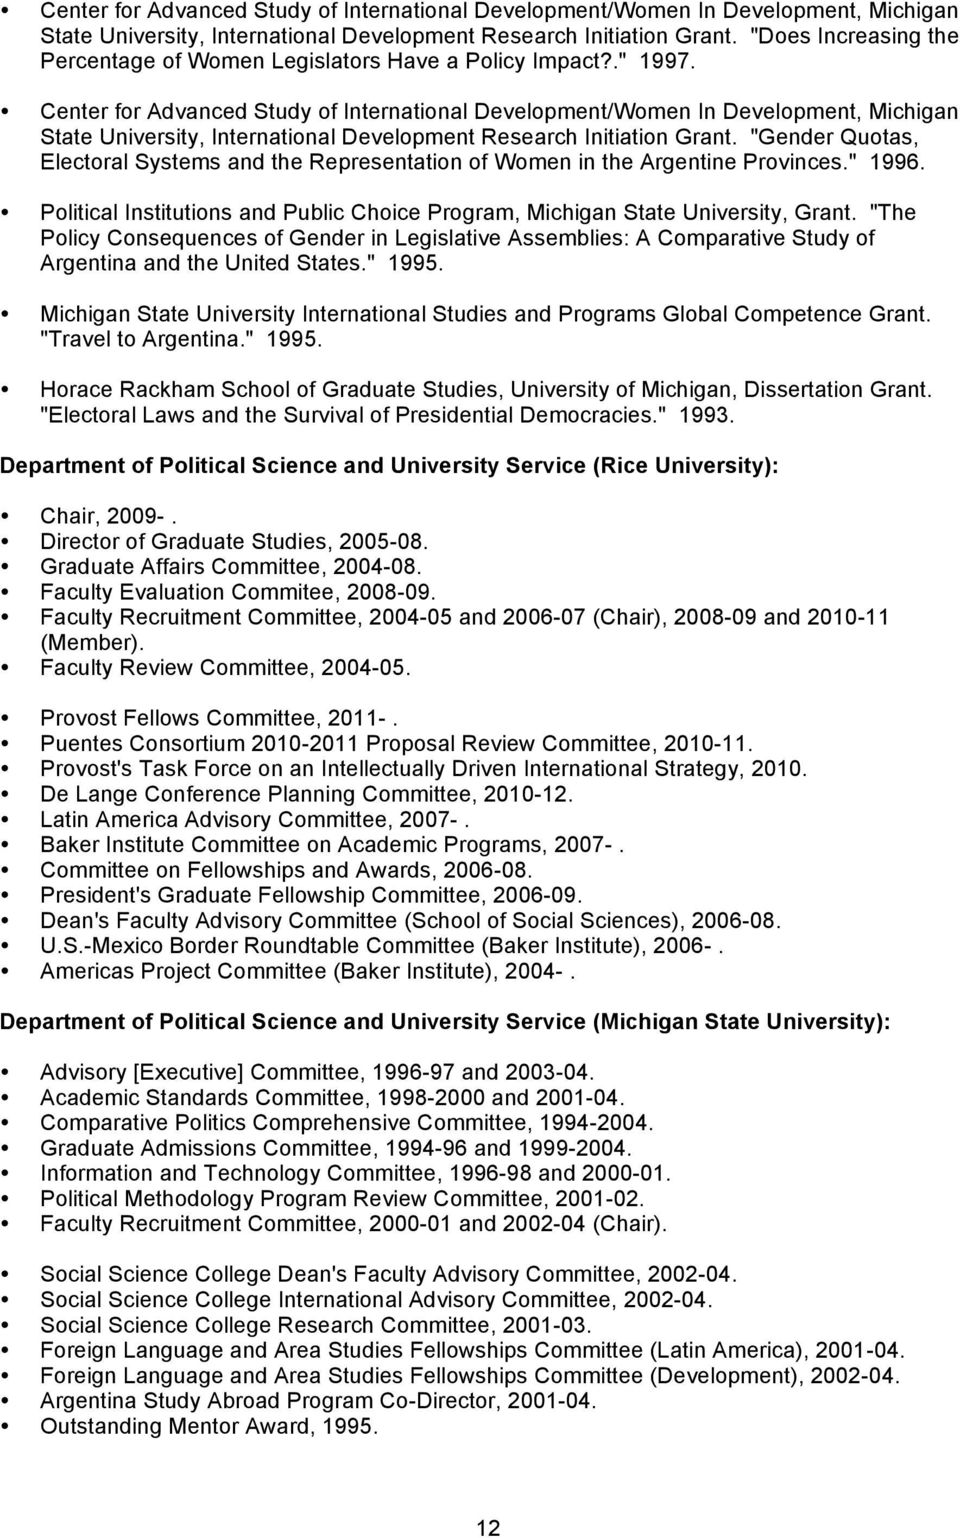 Political Institutions and Public Choice Program, Michigan State University, Grant.